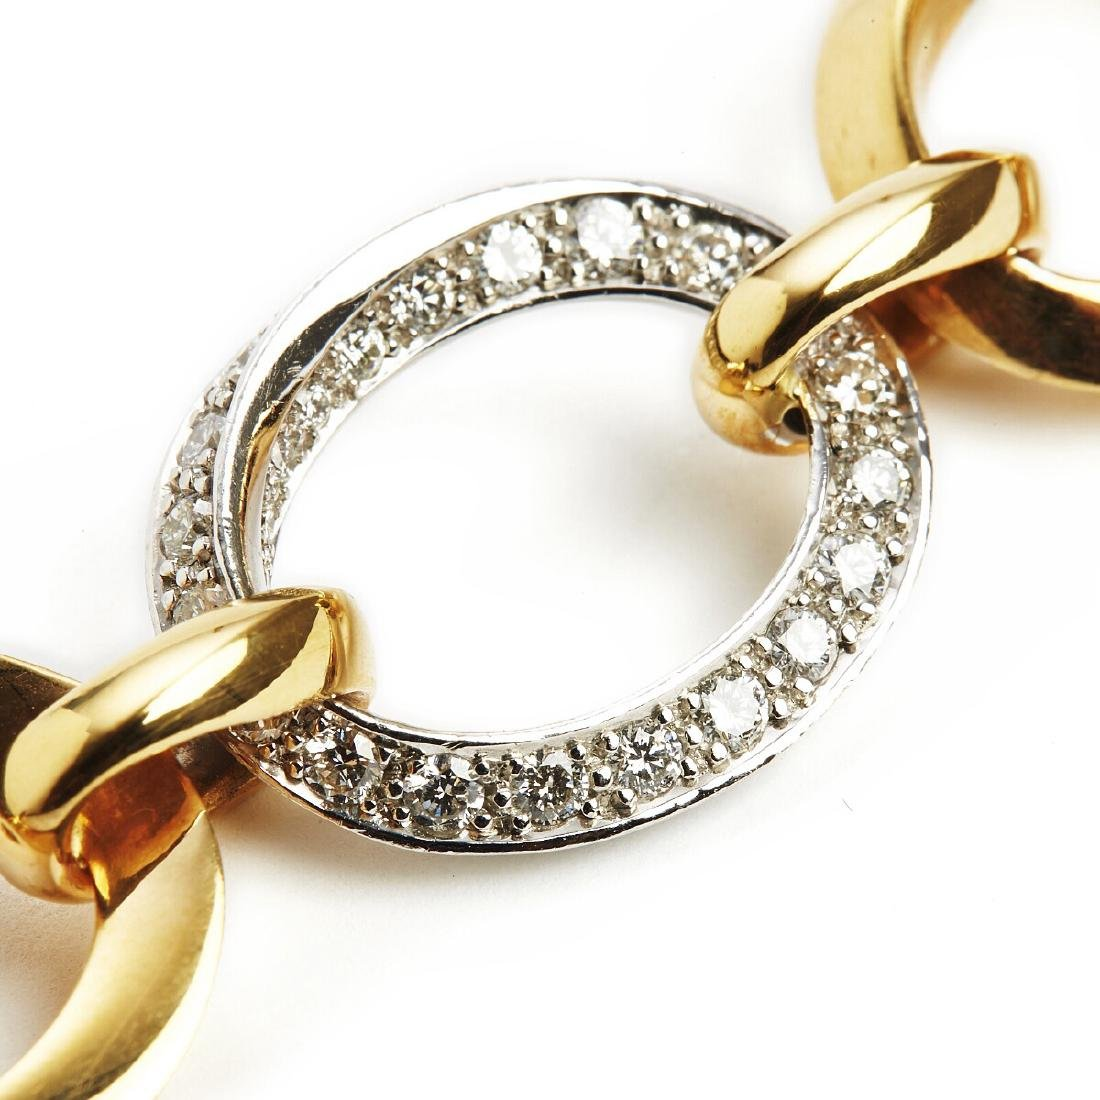 A diamond bracelet set with numerous brilliant-cut